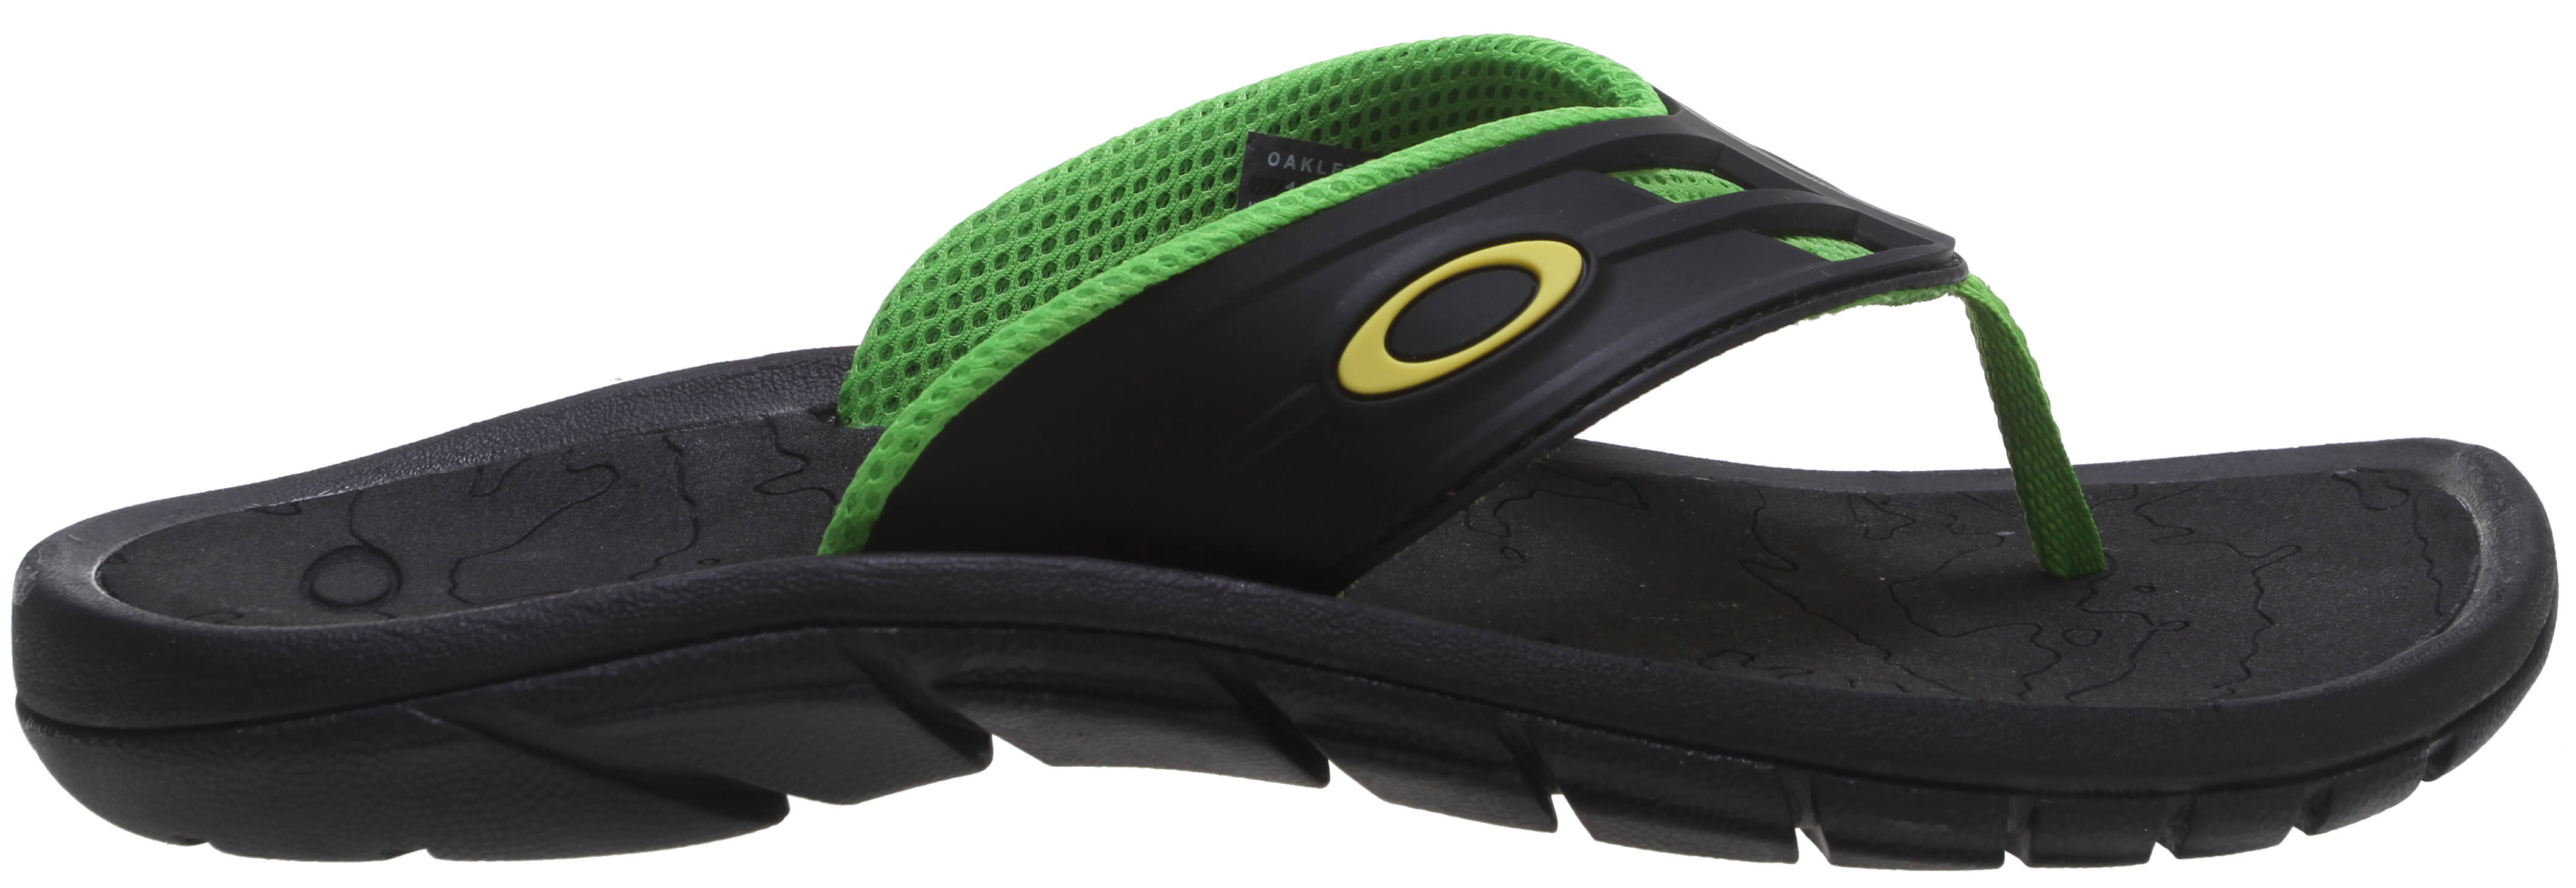 Oakley Supercoil 15 Sandals